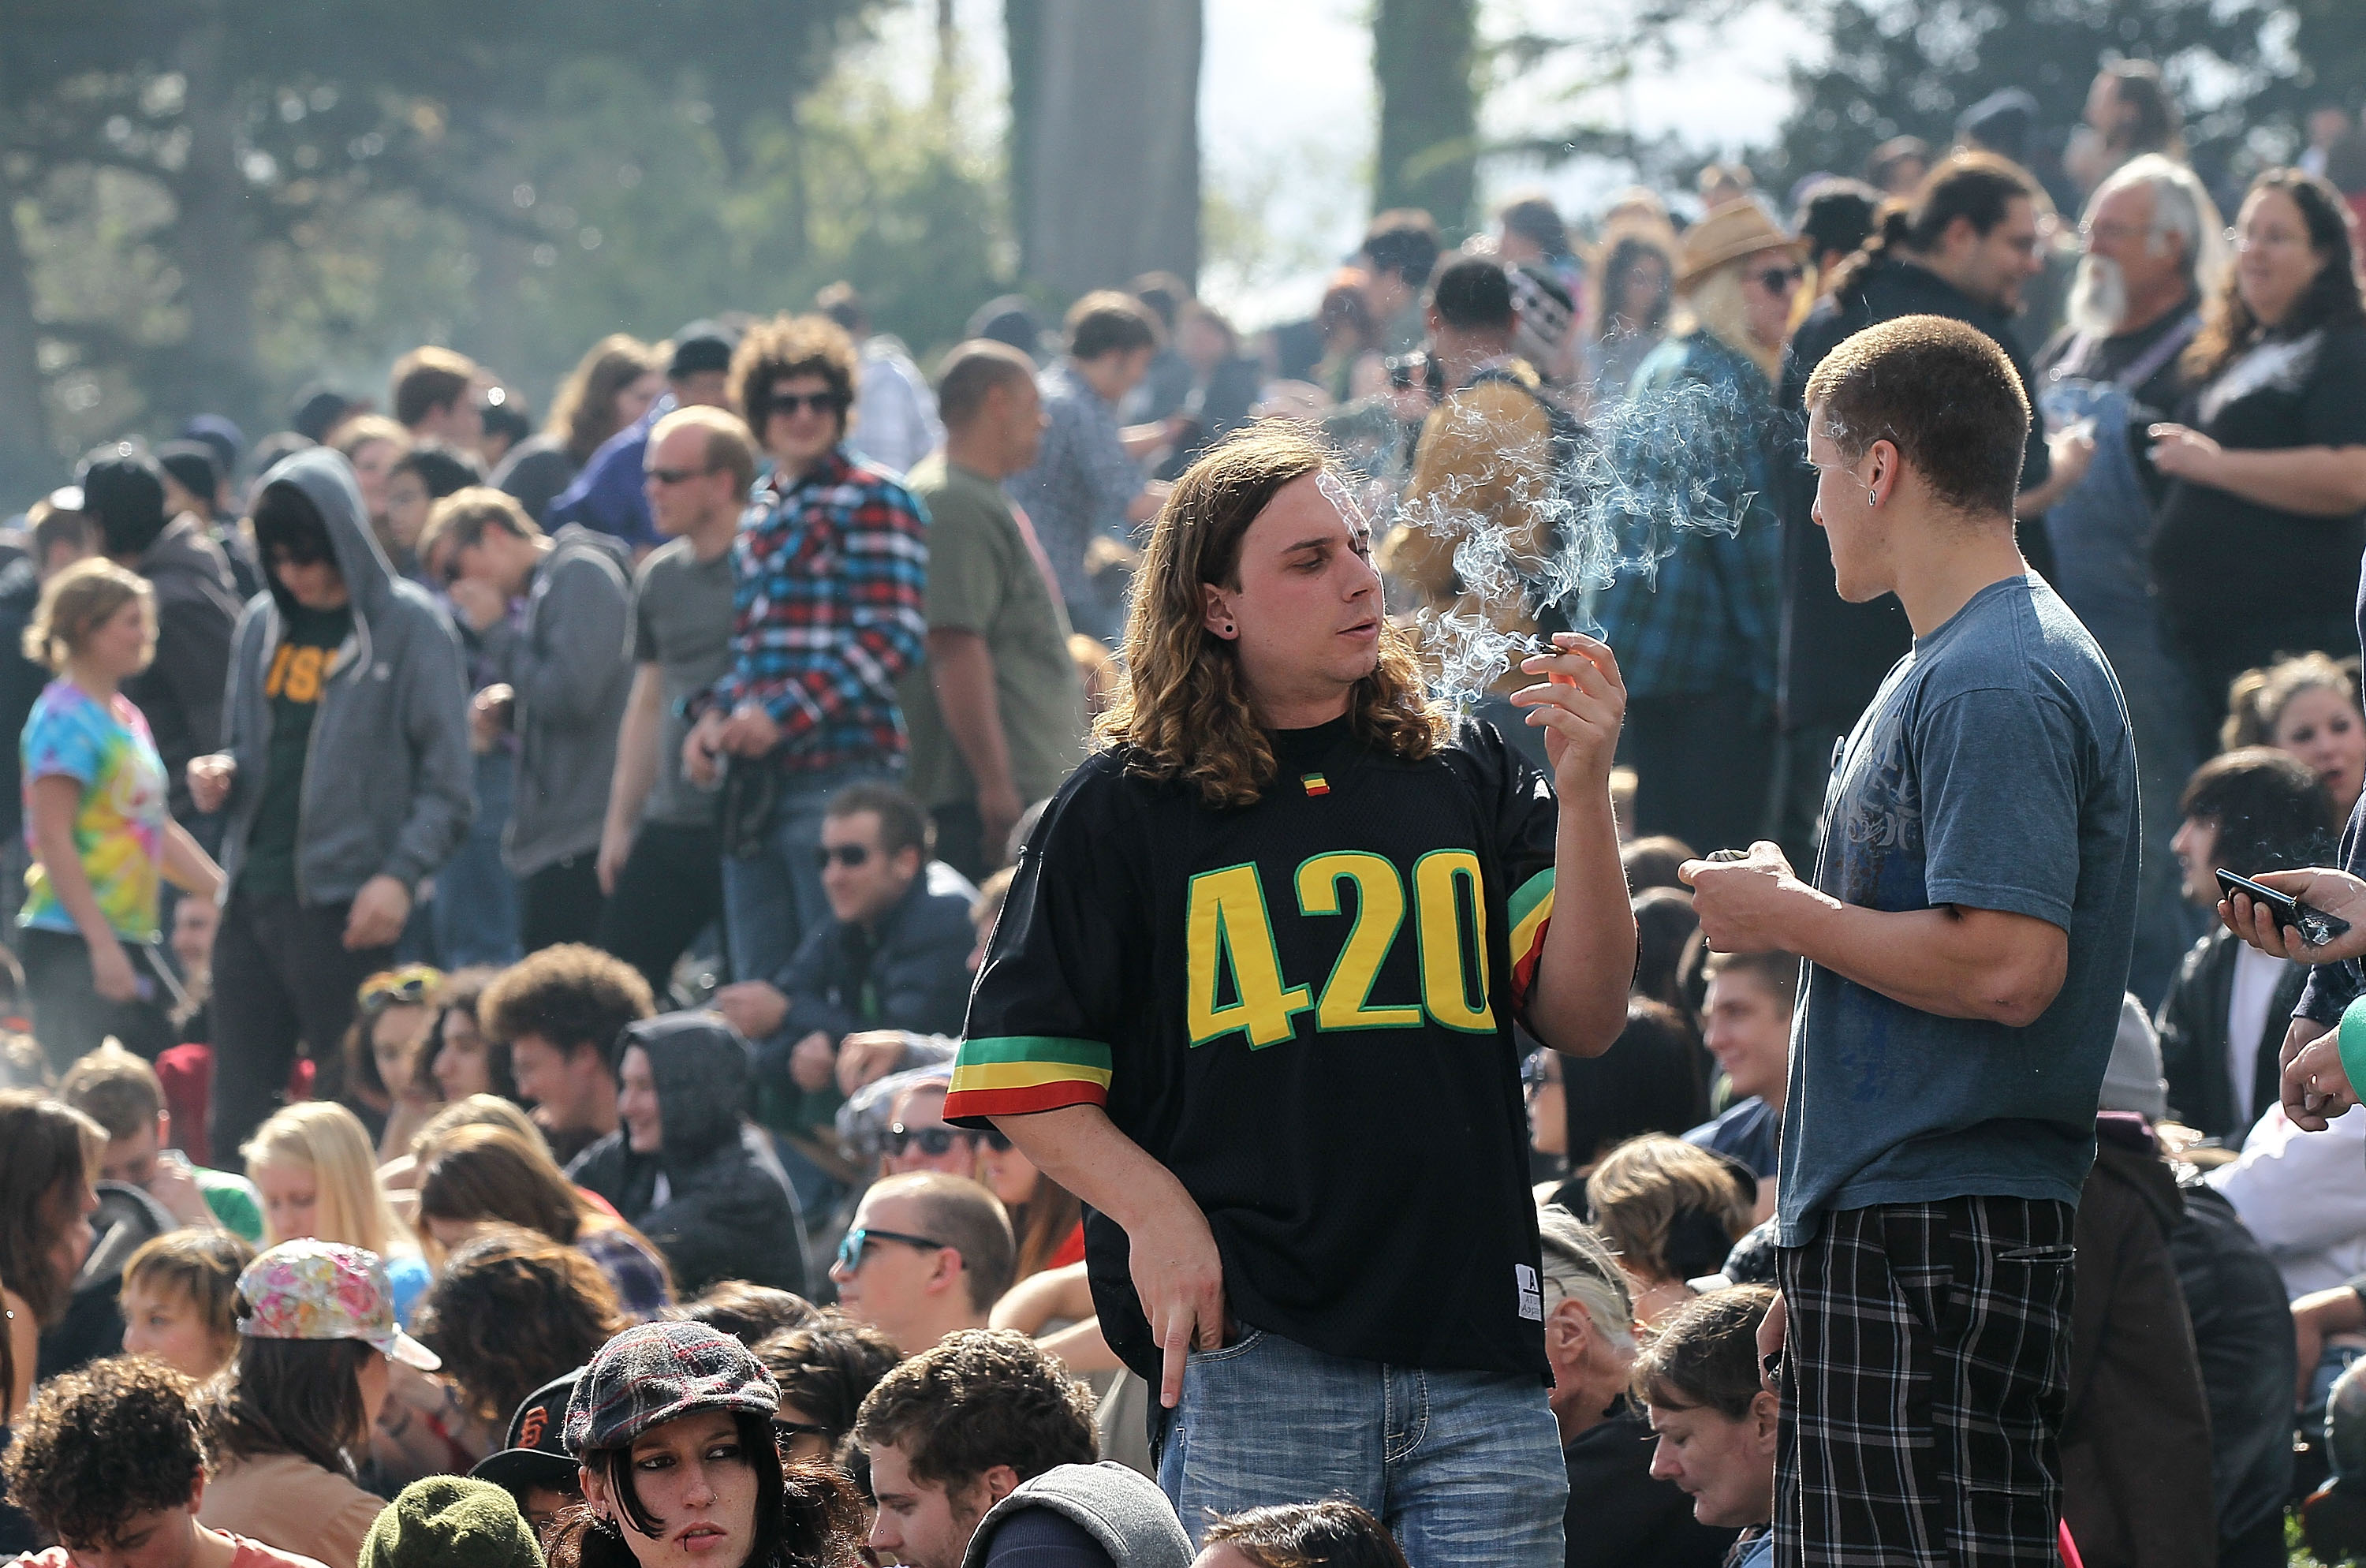 Pot smokers descend on San Francisco's Hippie Hill on 4/20